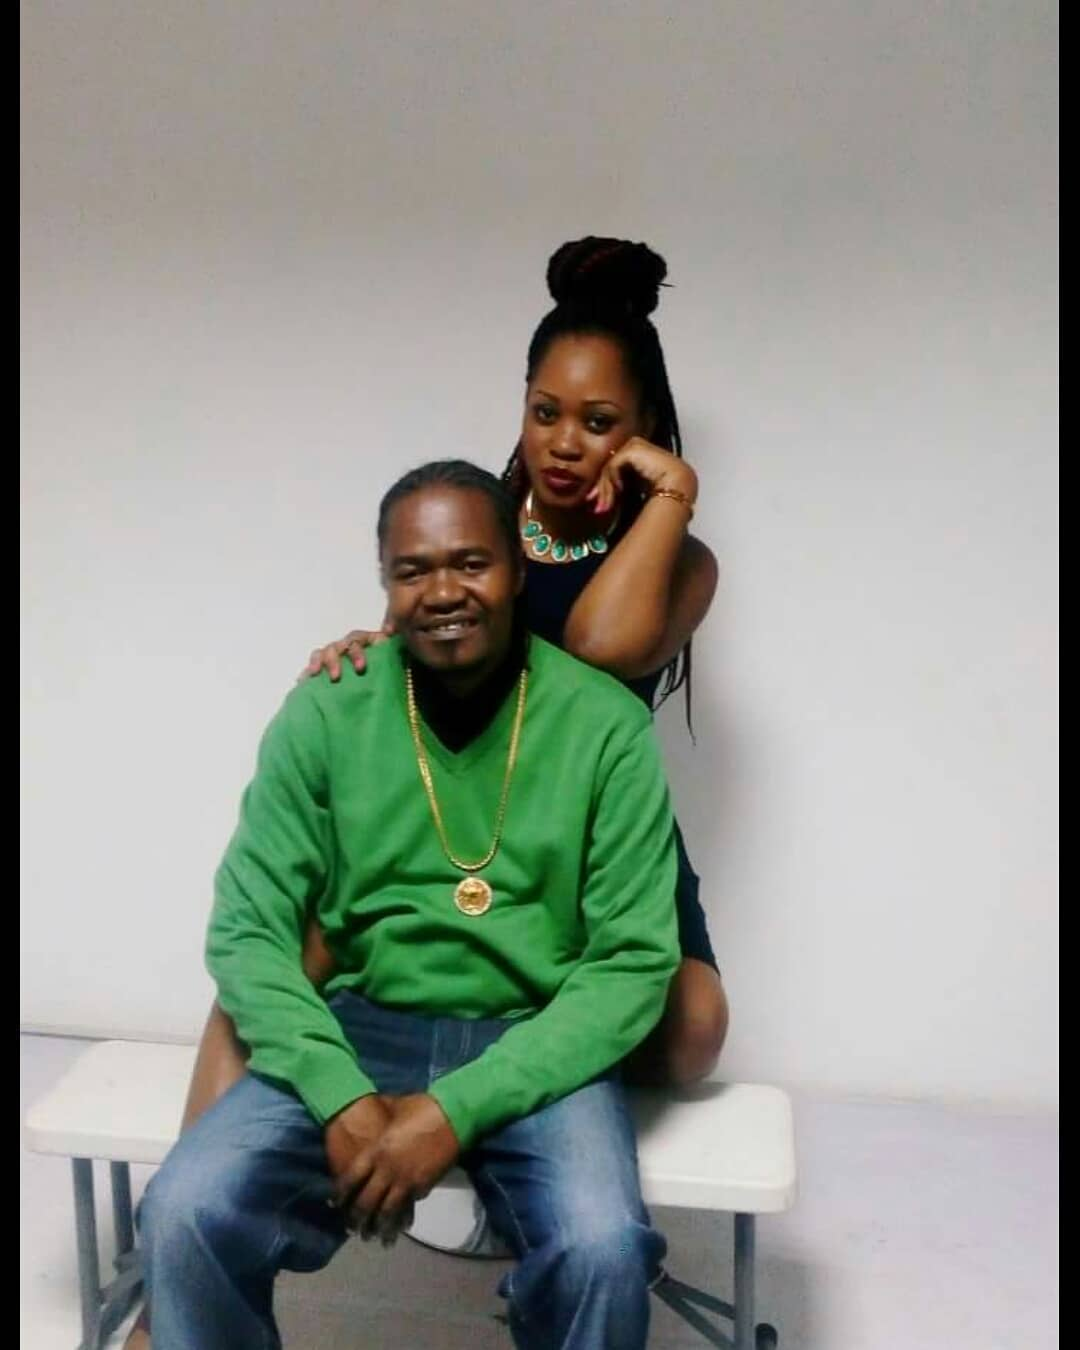 40645306 2095837233767854 8014767446862927528 n - Jua Cali talks about why his son underwent surgery